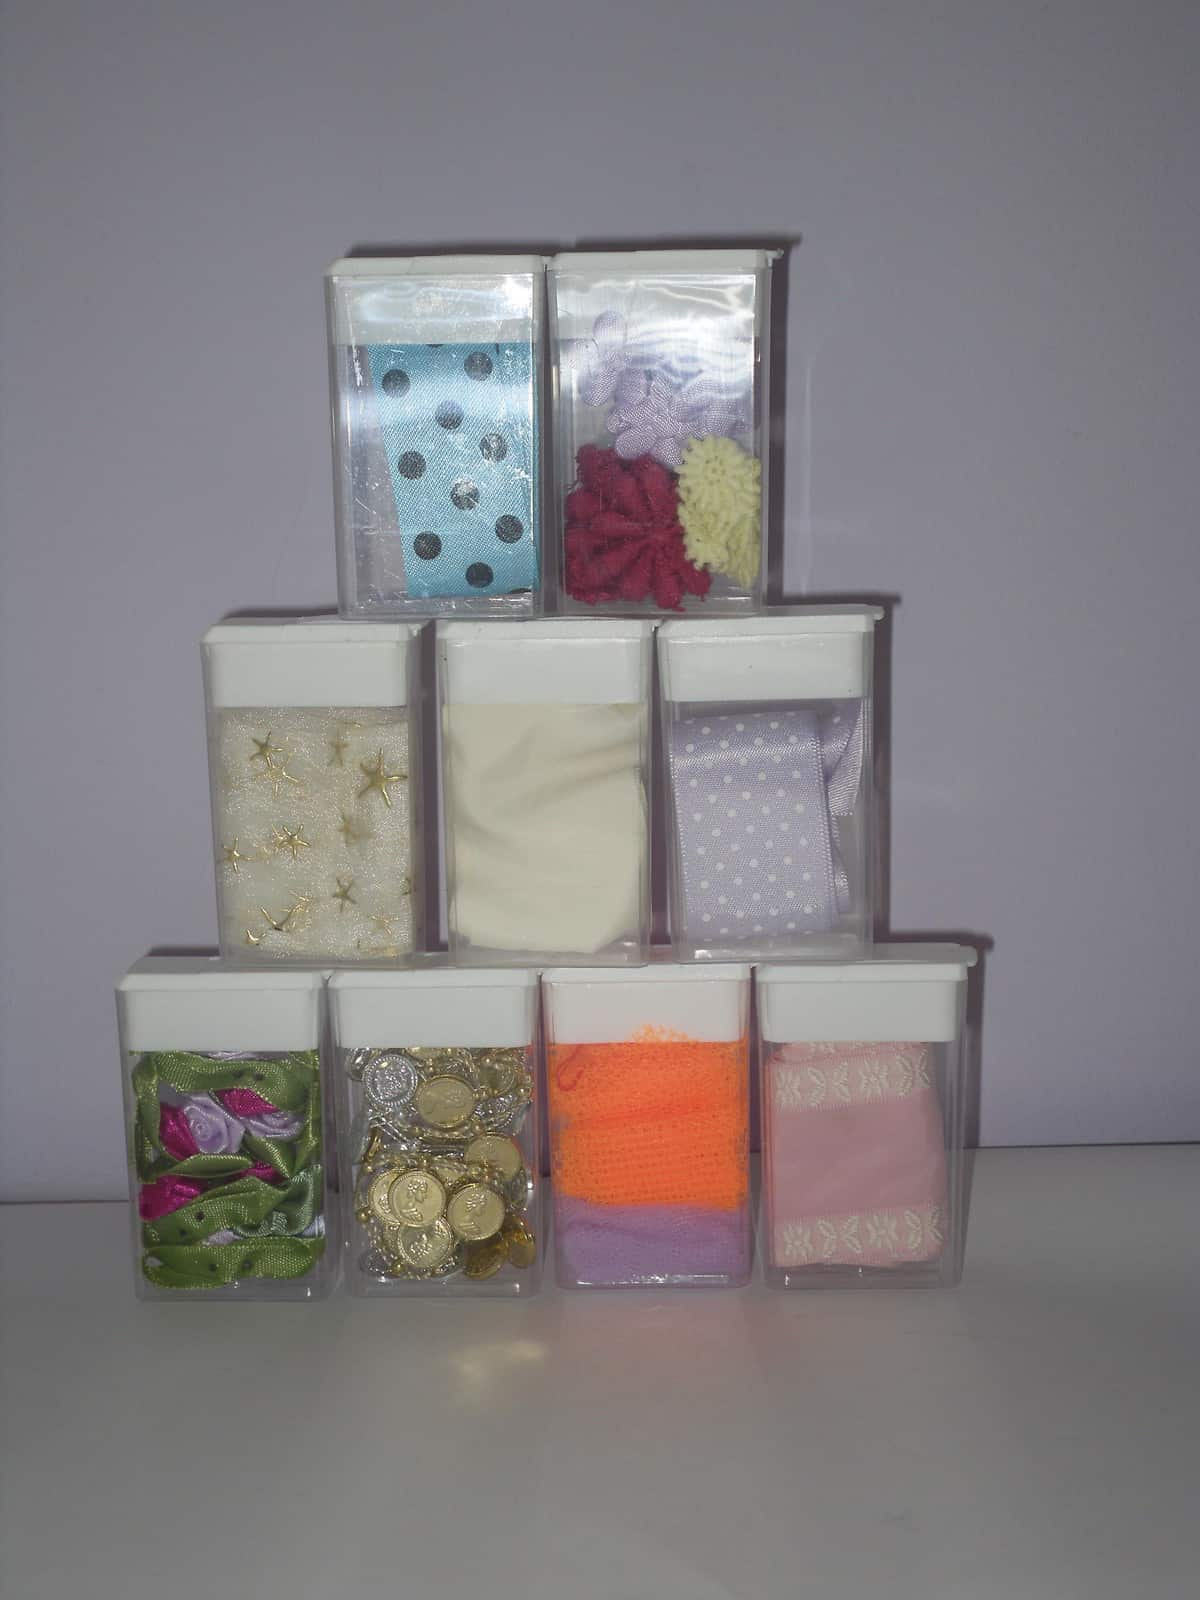 Tic Tac craft supply holders